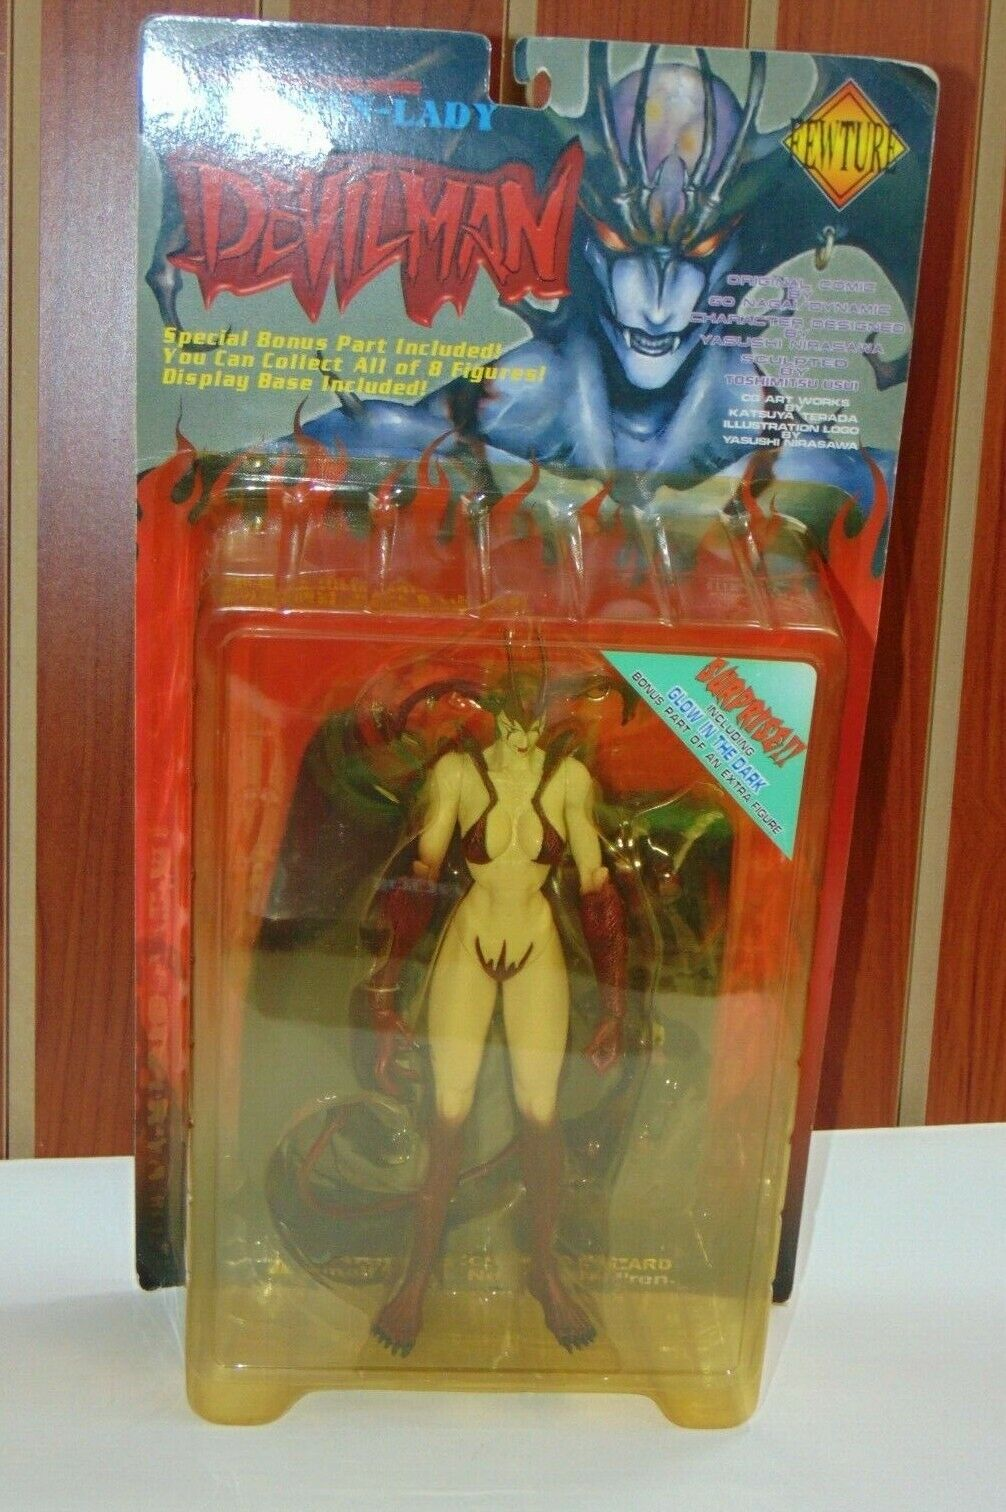 DEVILuomo LADY cifra With Glow in the Dark Part - Fewture